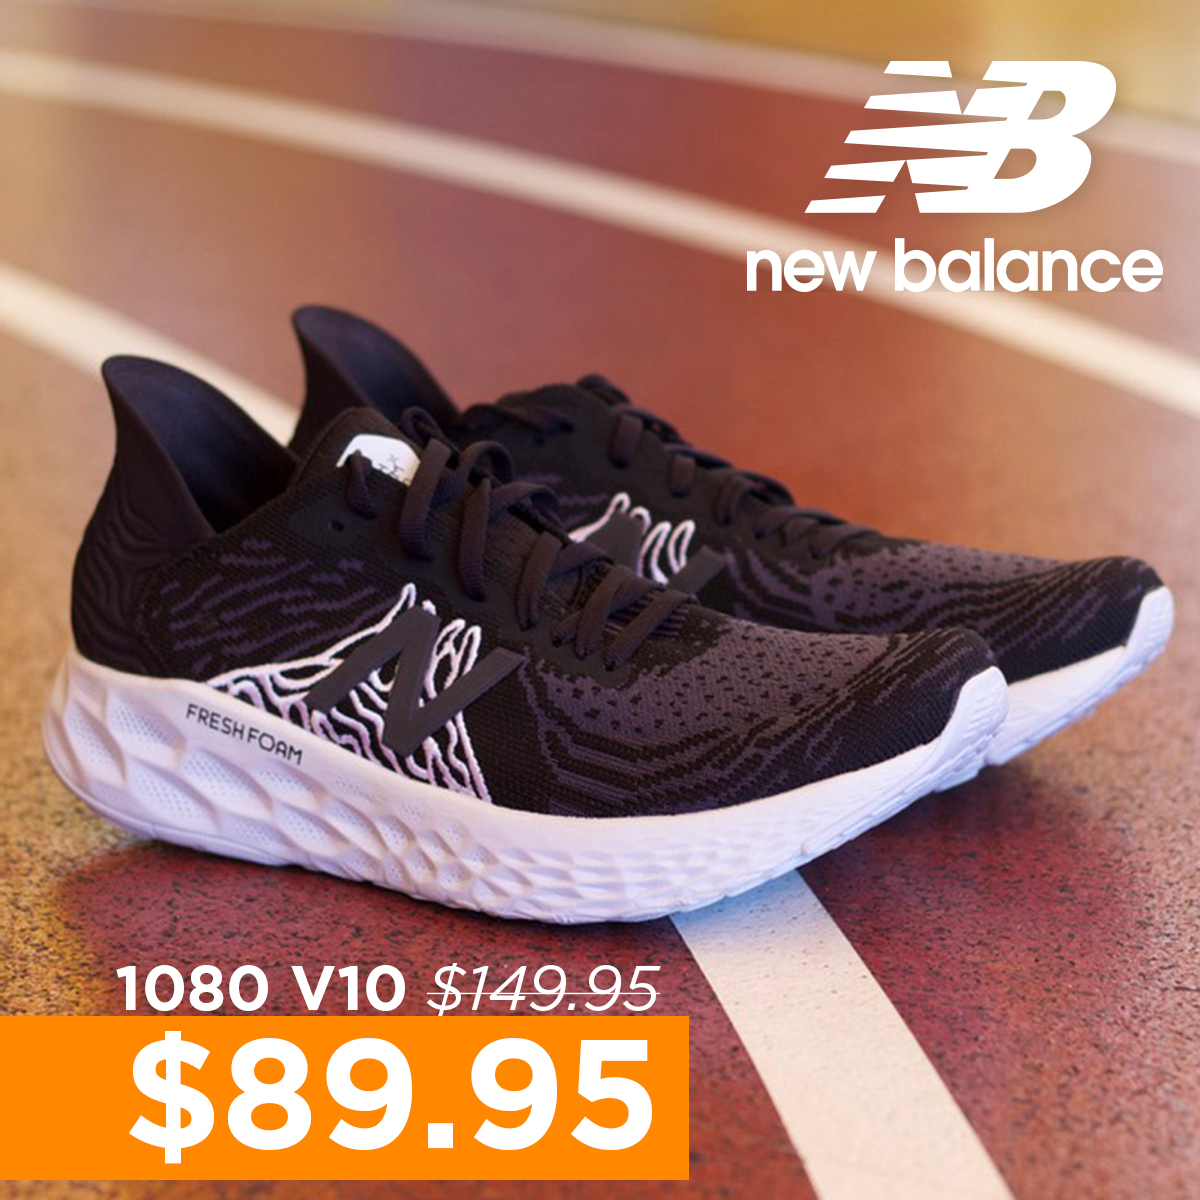 New Balance 1080 v10 now $89.95 instead of $149.95